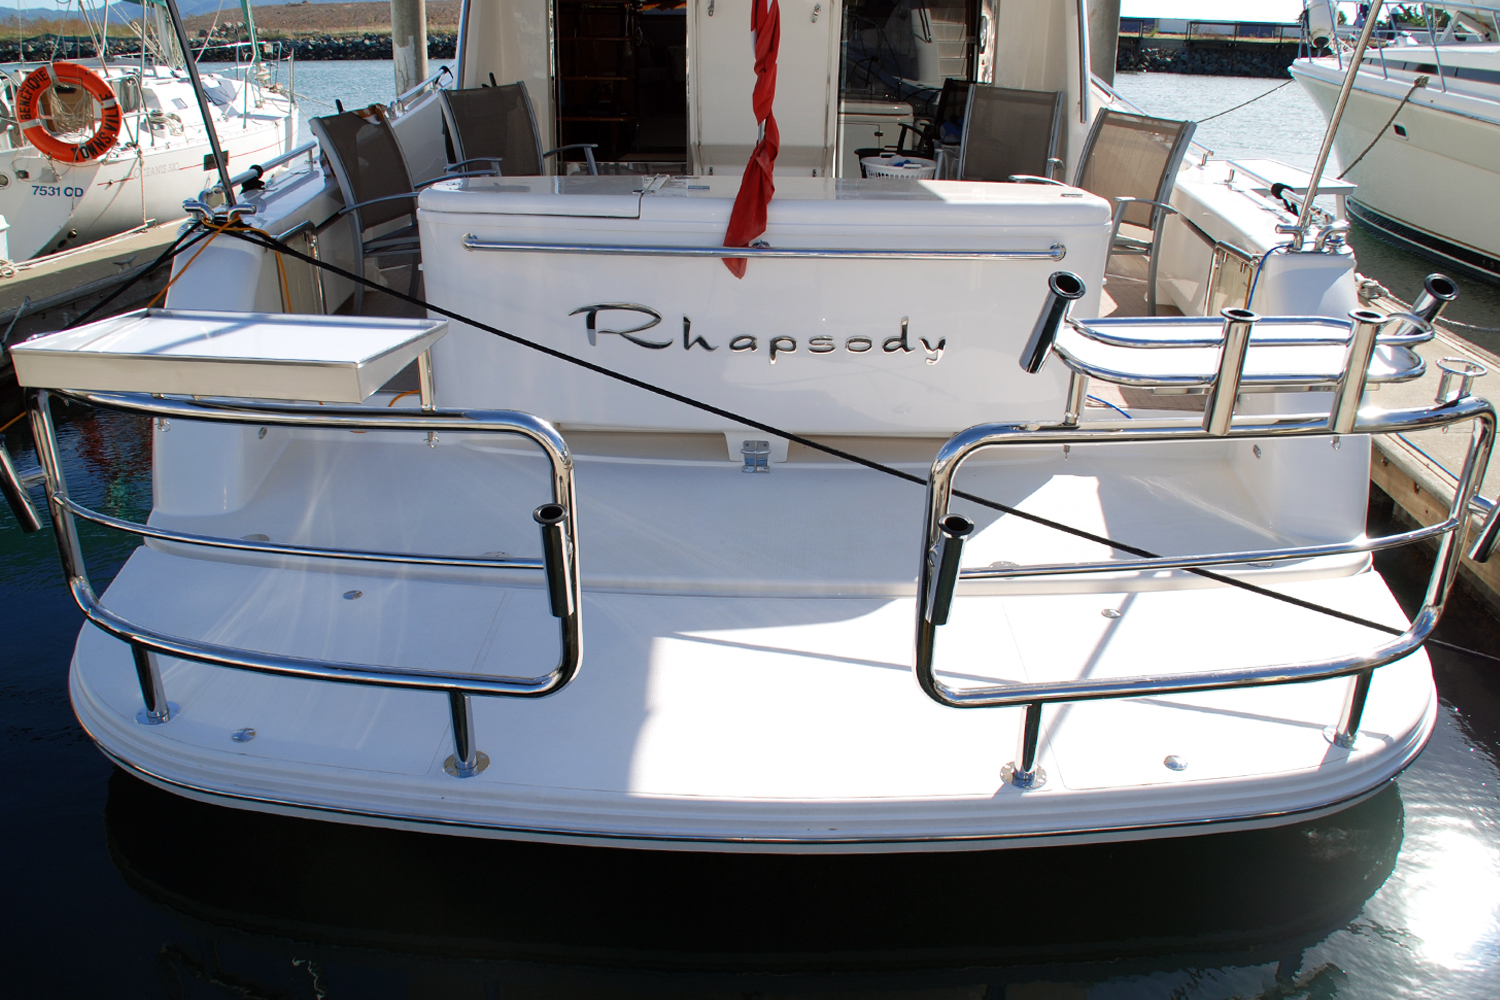 Duckboard rail on Maritimo 60 boat with bait board